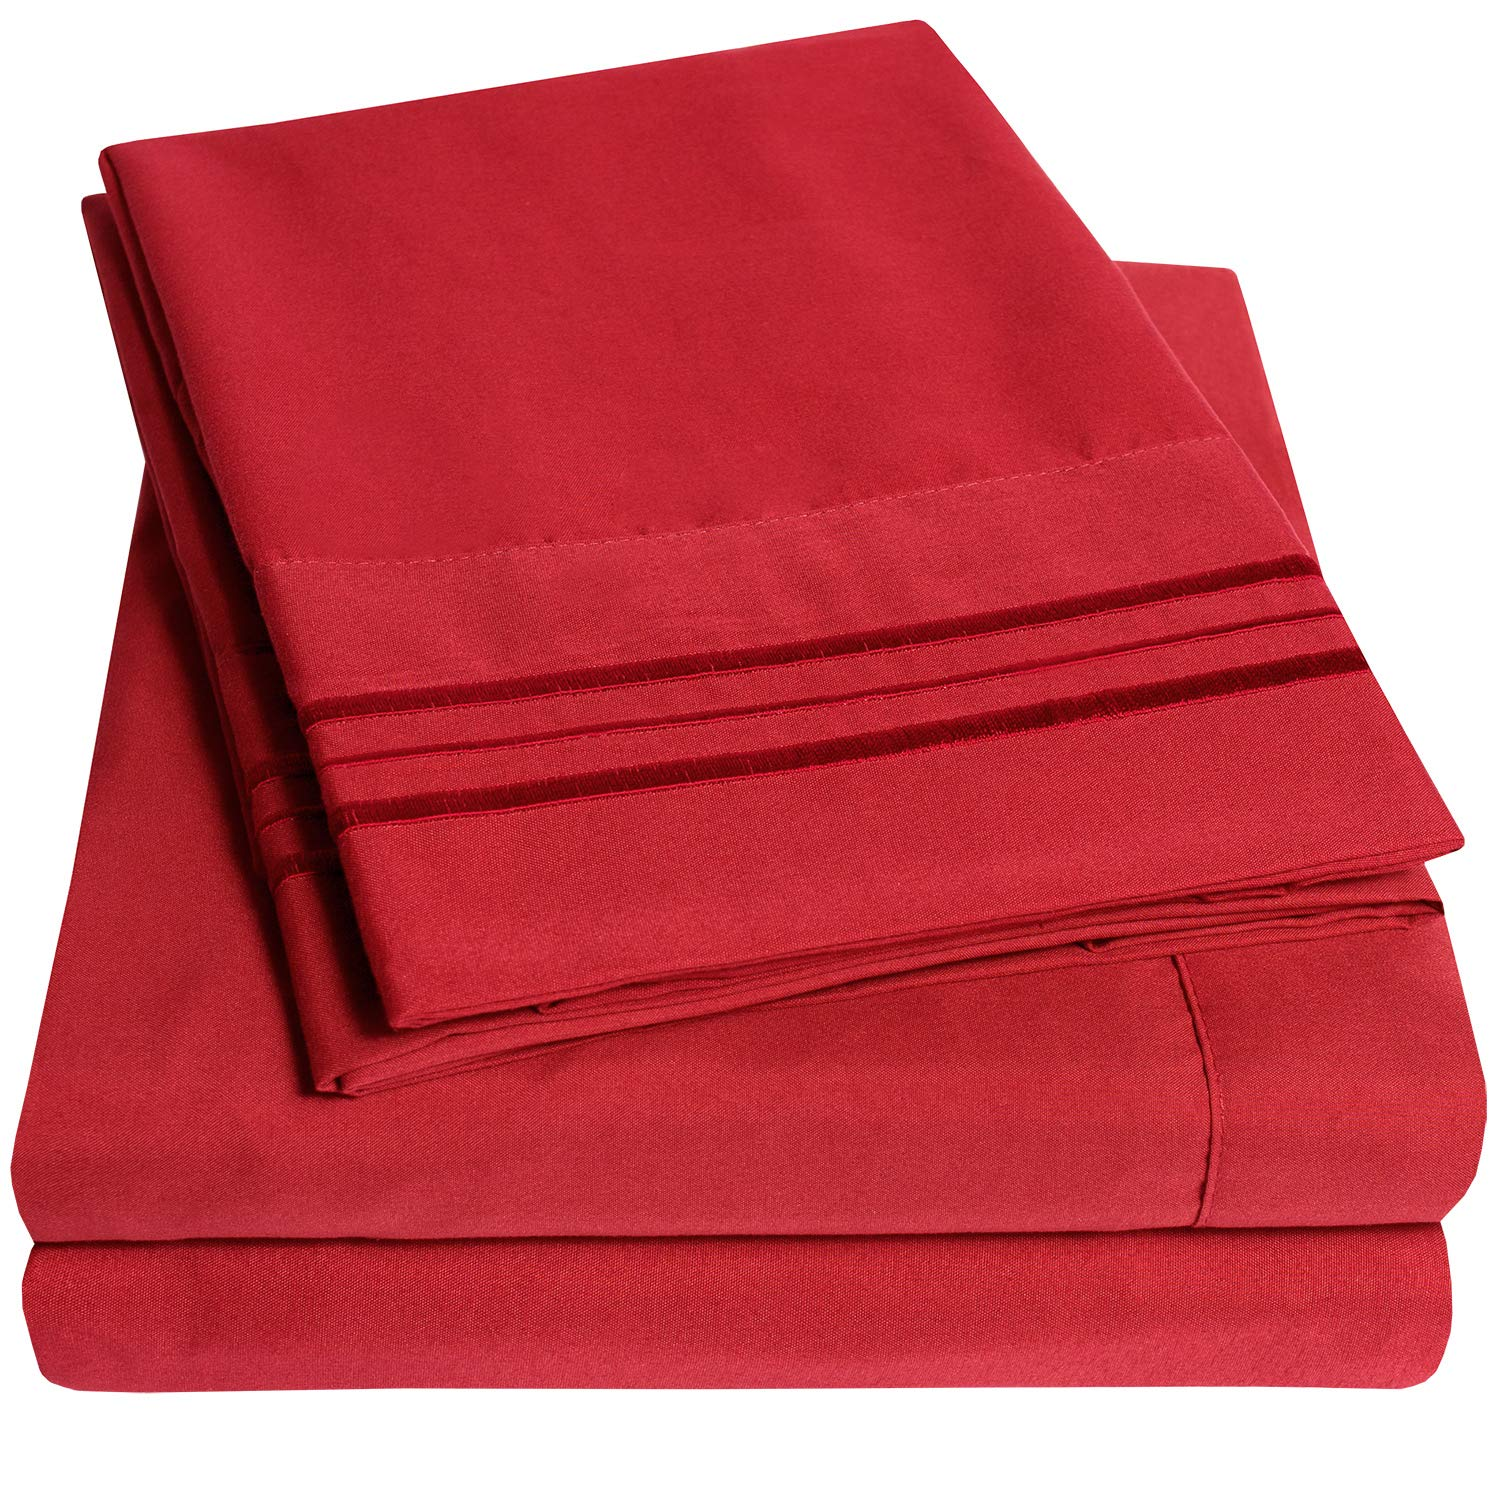 1500 Supreme Collection Bed Sheets Set - Luxury Hotel Style 4 Piece Extra Soft Sheet Set - Deep Pocket Wrinkle Free Hypoallergenic Bedding - Over 40+ Colors - Queen Size, Red